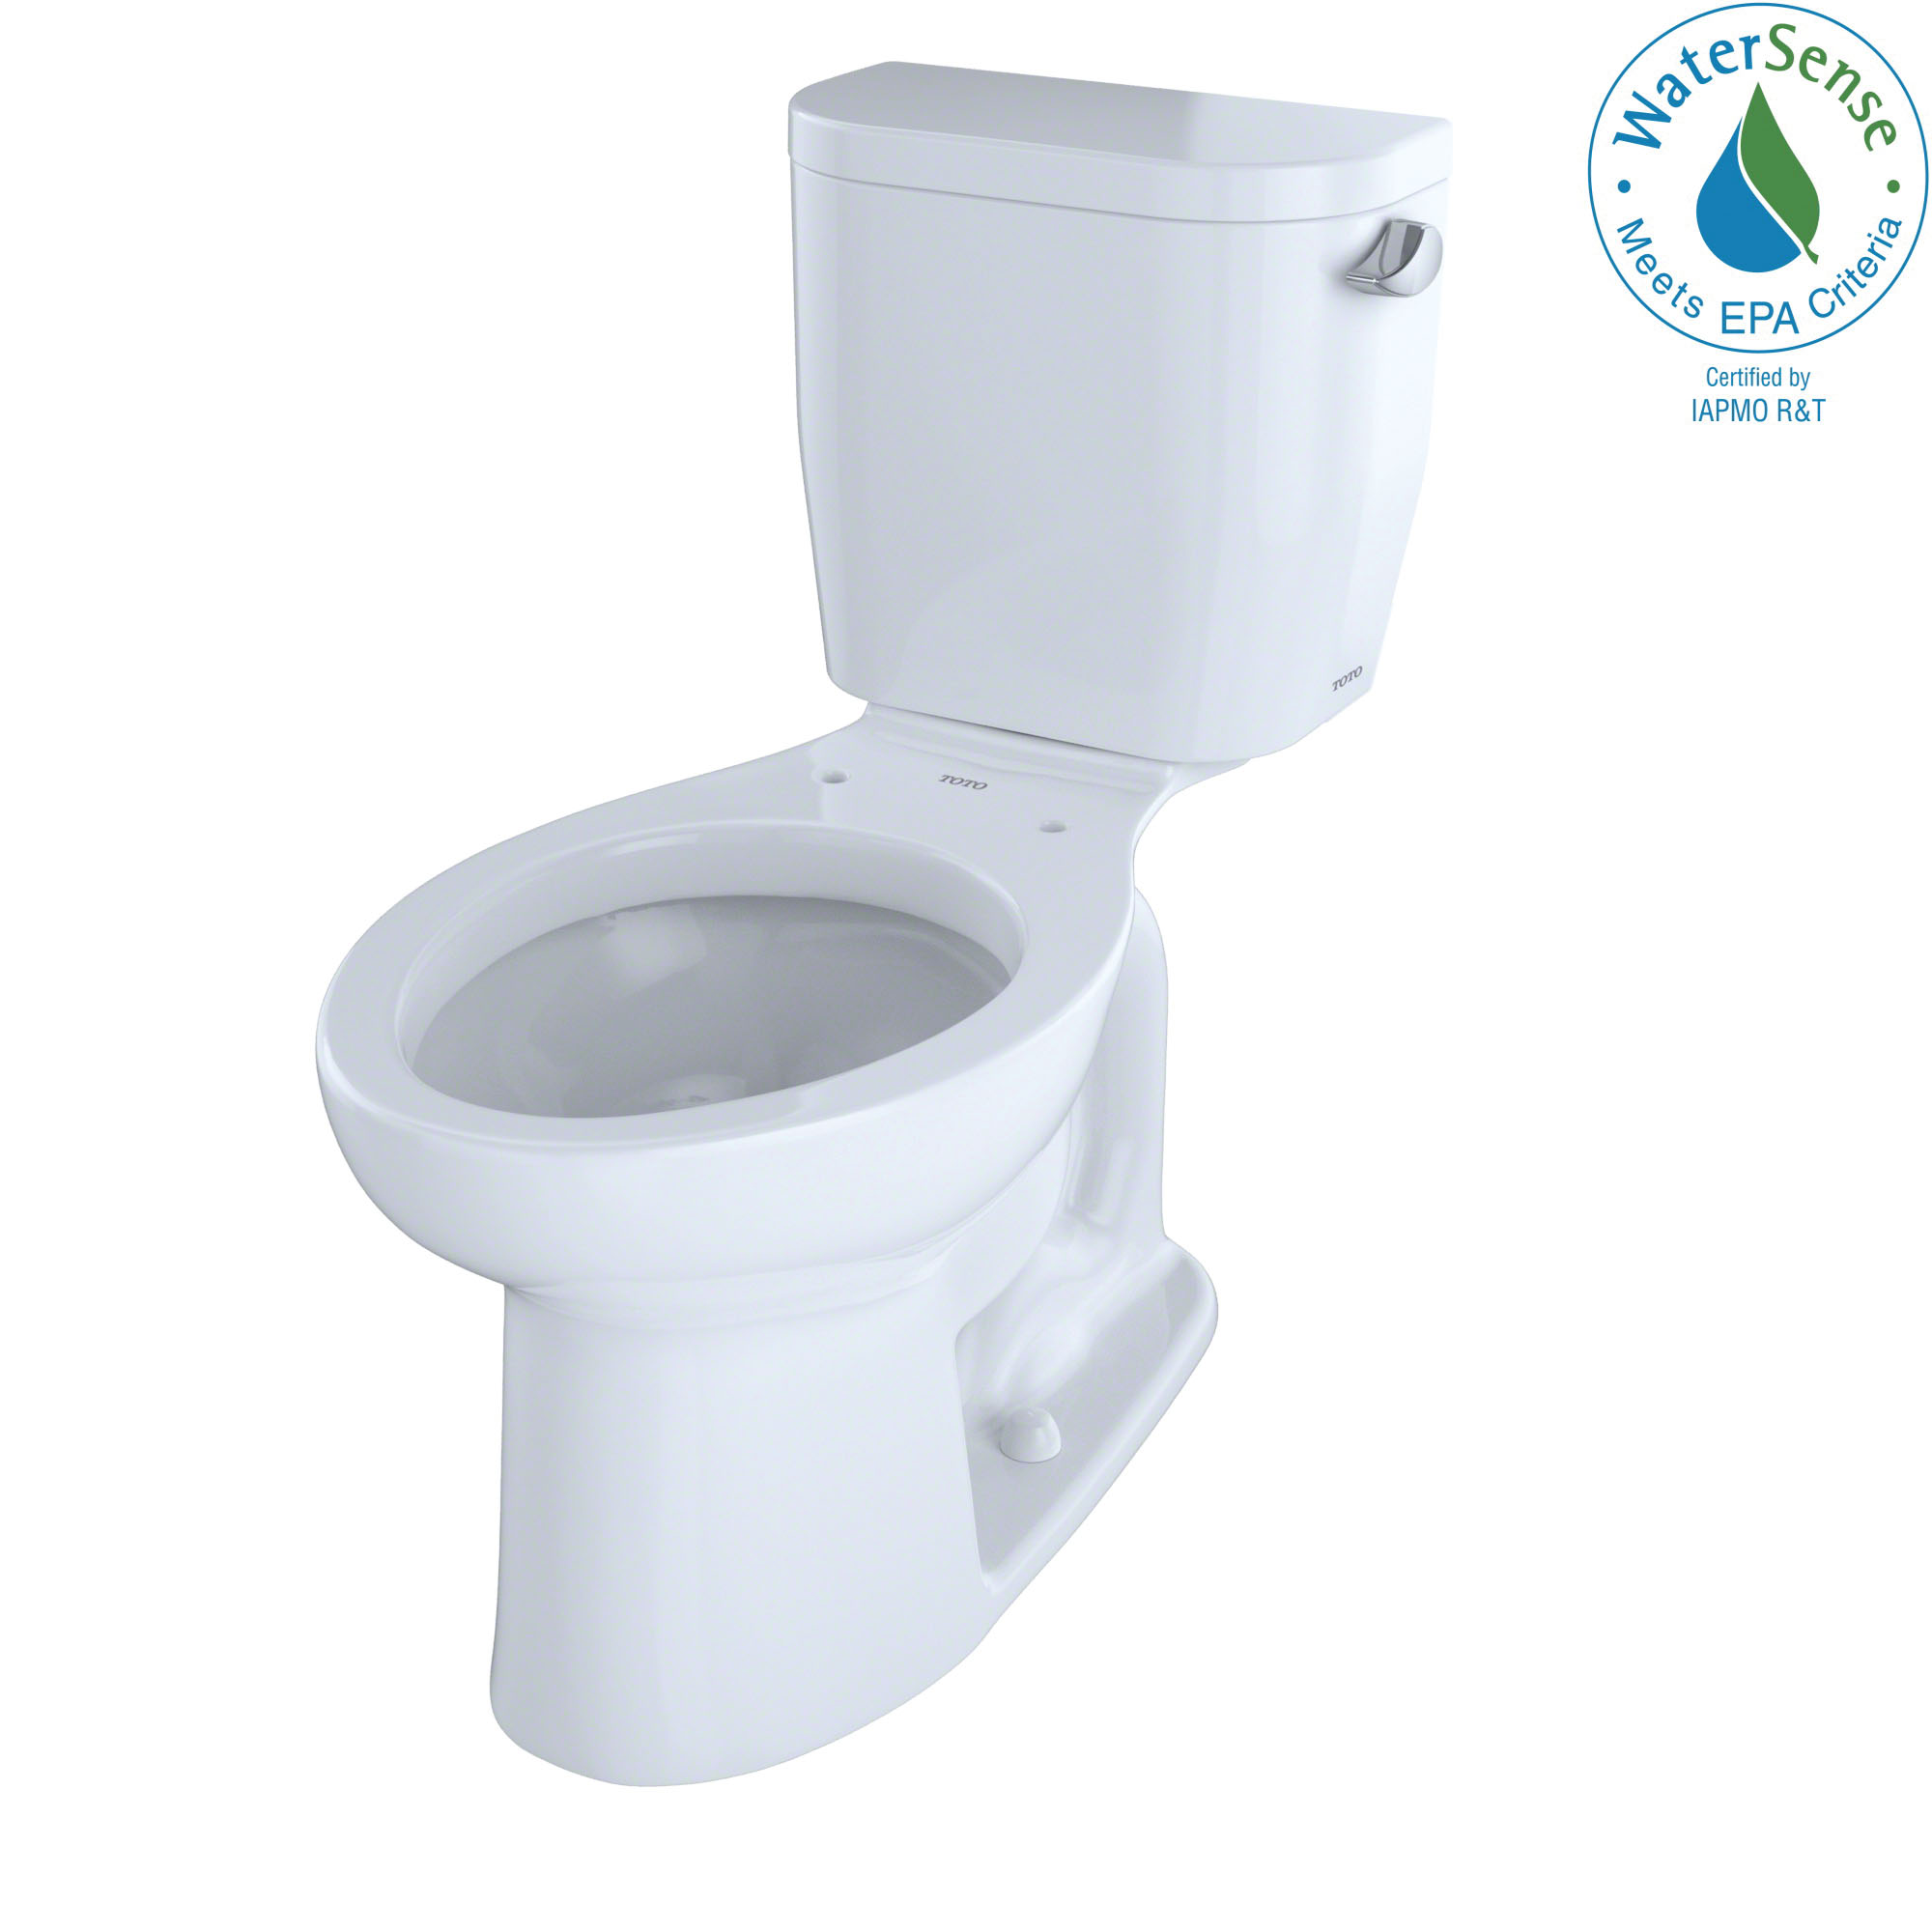 Toto® CST244EFR#01 2-Piece Universal Height Close Coupled Toilet With Right-Hand Trip Lever, Entrada™, Elongated Bowl, 12 in Rough-In, 1.28 gpf, Cotton White, Import